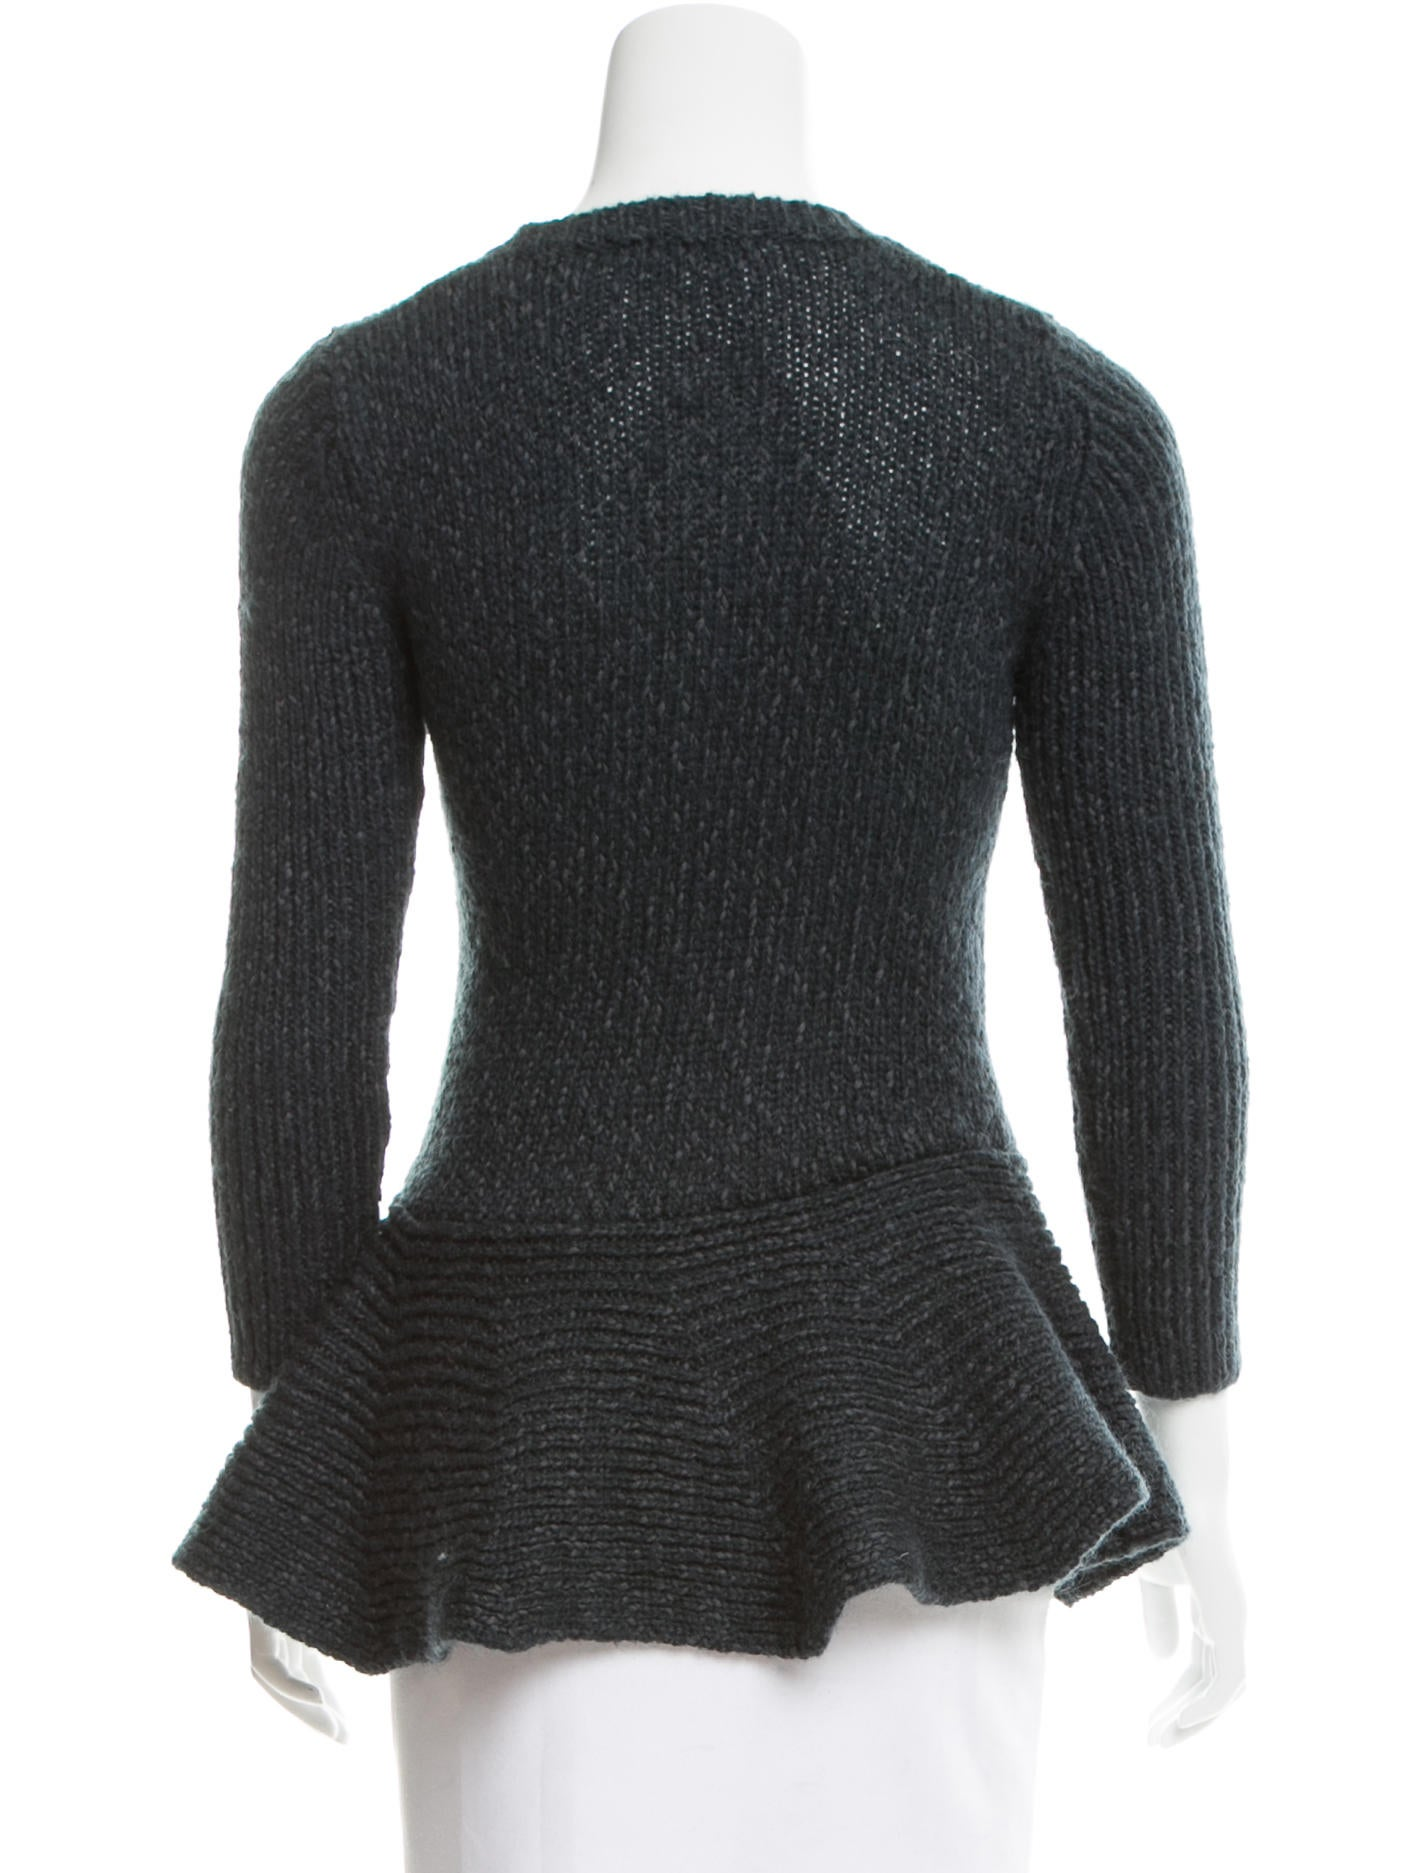 Derek Lam 10 Crosby Knit Peplum Sweater - Clothing - WDL25265 The RealReal